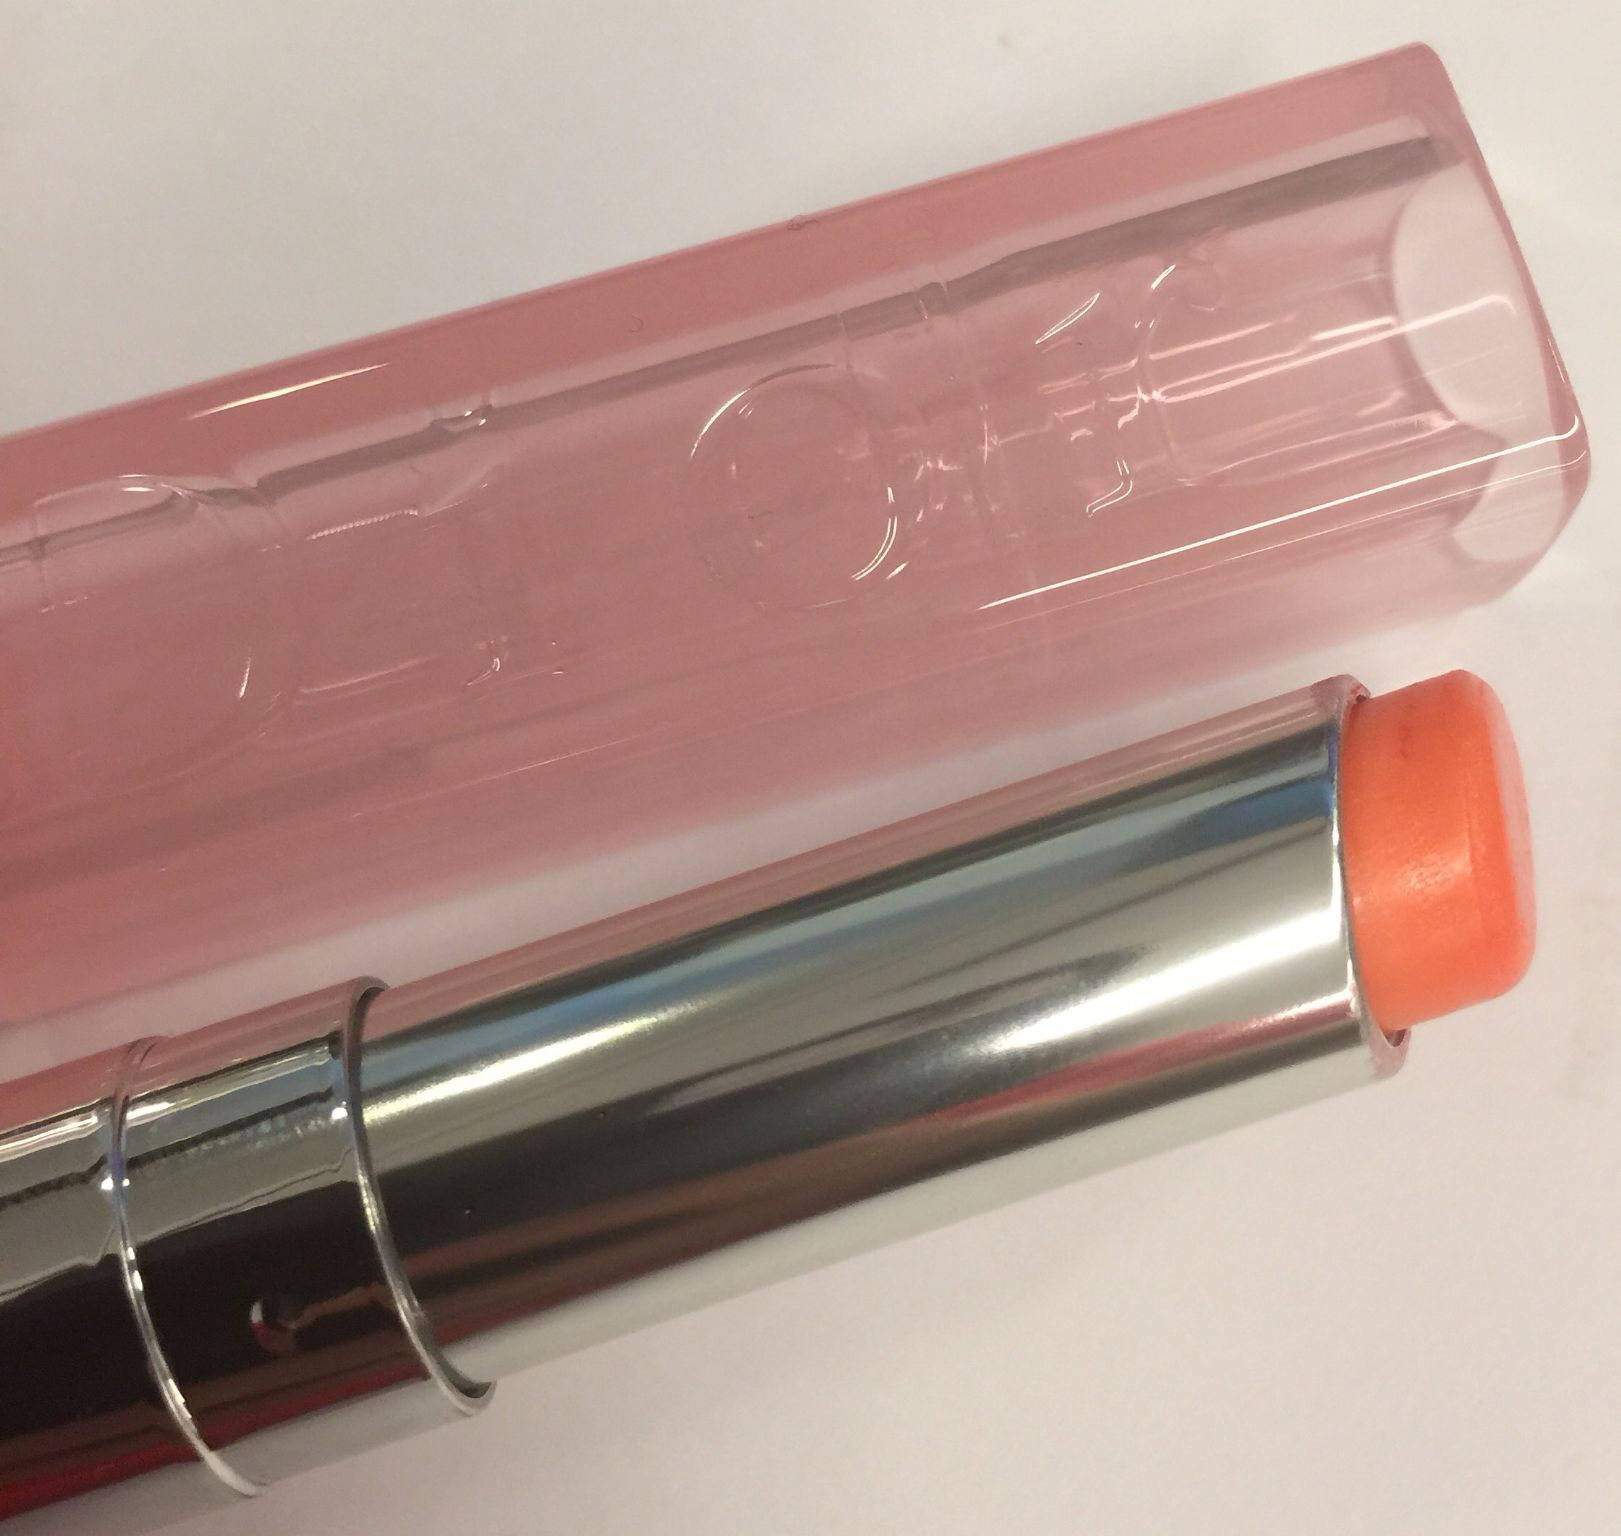 Dior Lip Glow Coral (Uploaded by Kaelie)